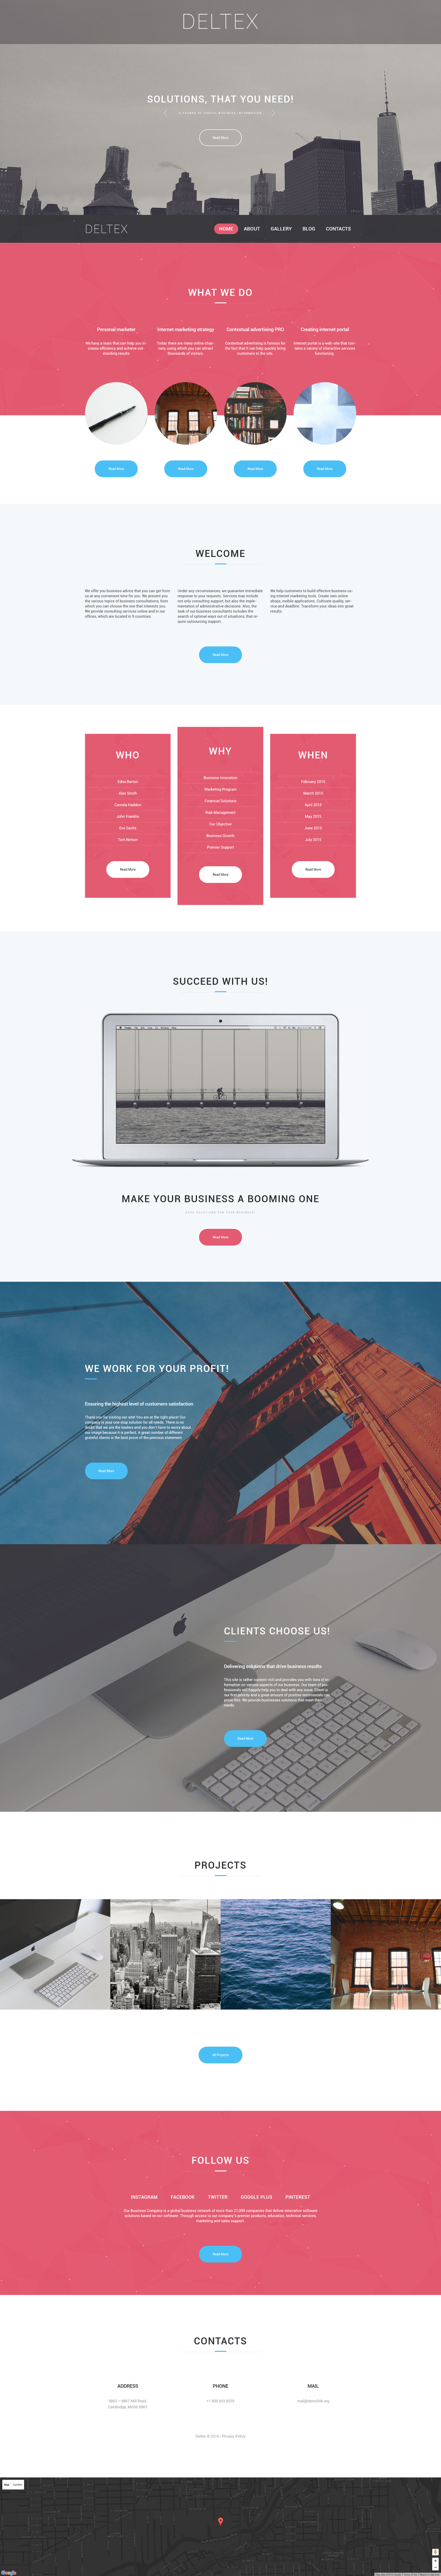 Deltex WordPress Theme - screenshot